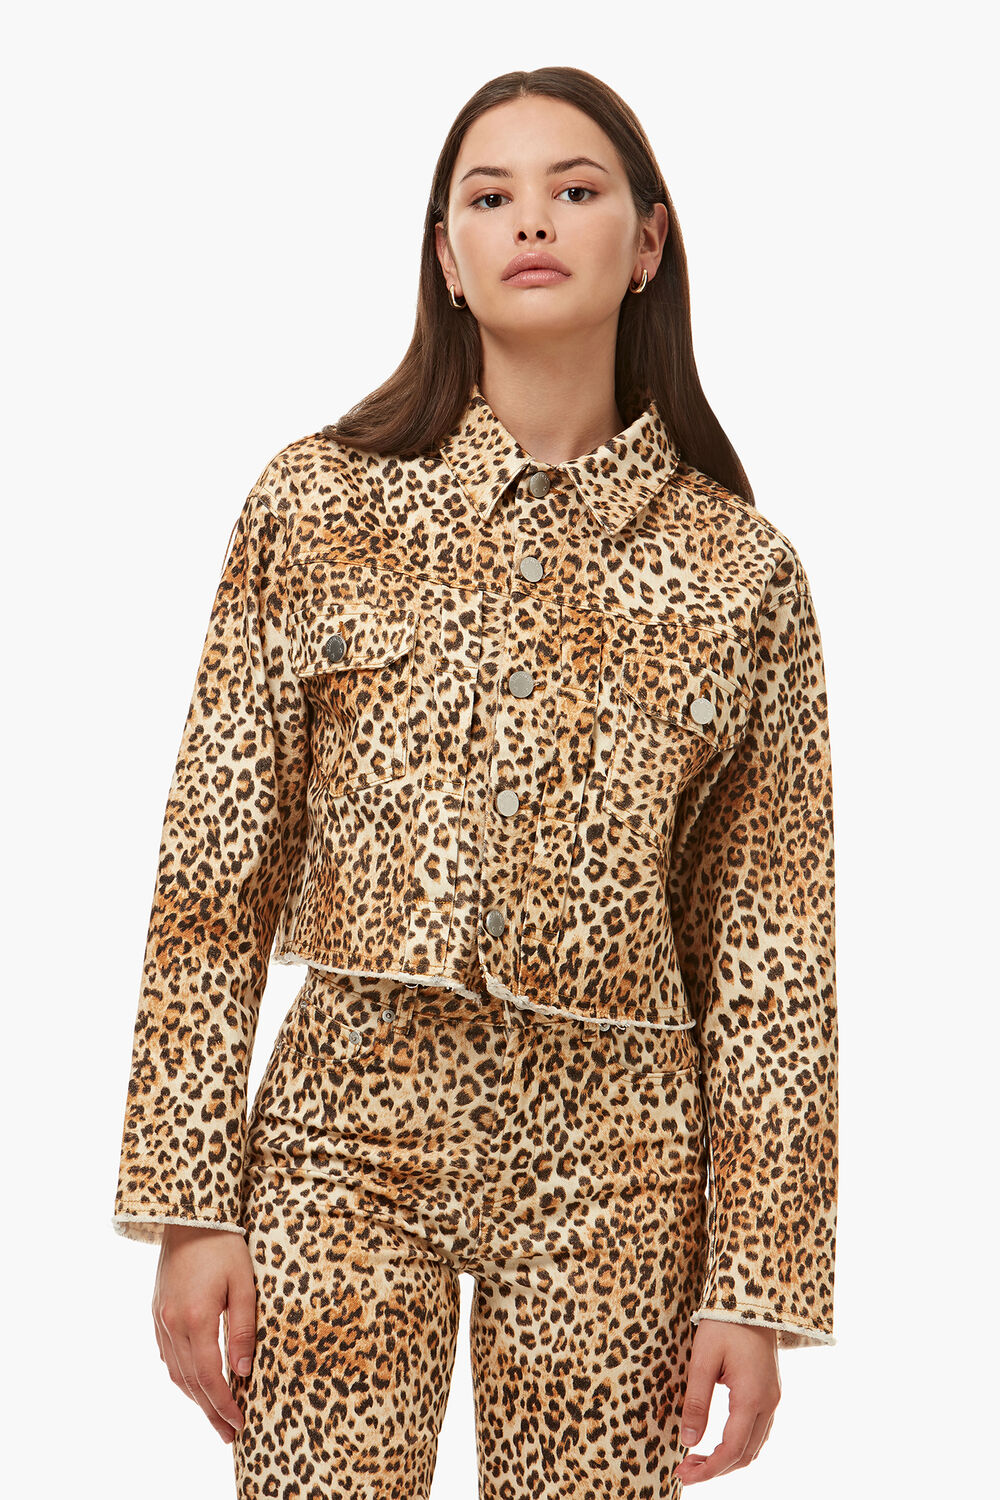 Berty Denim Jacket Leopard Print